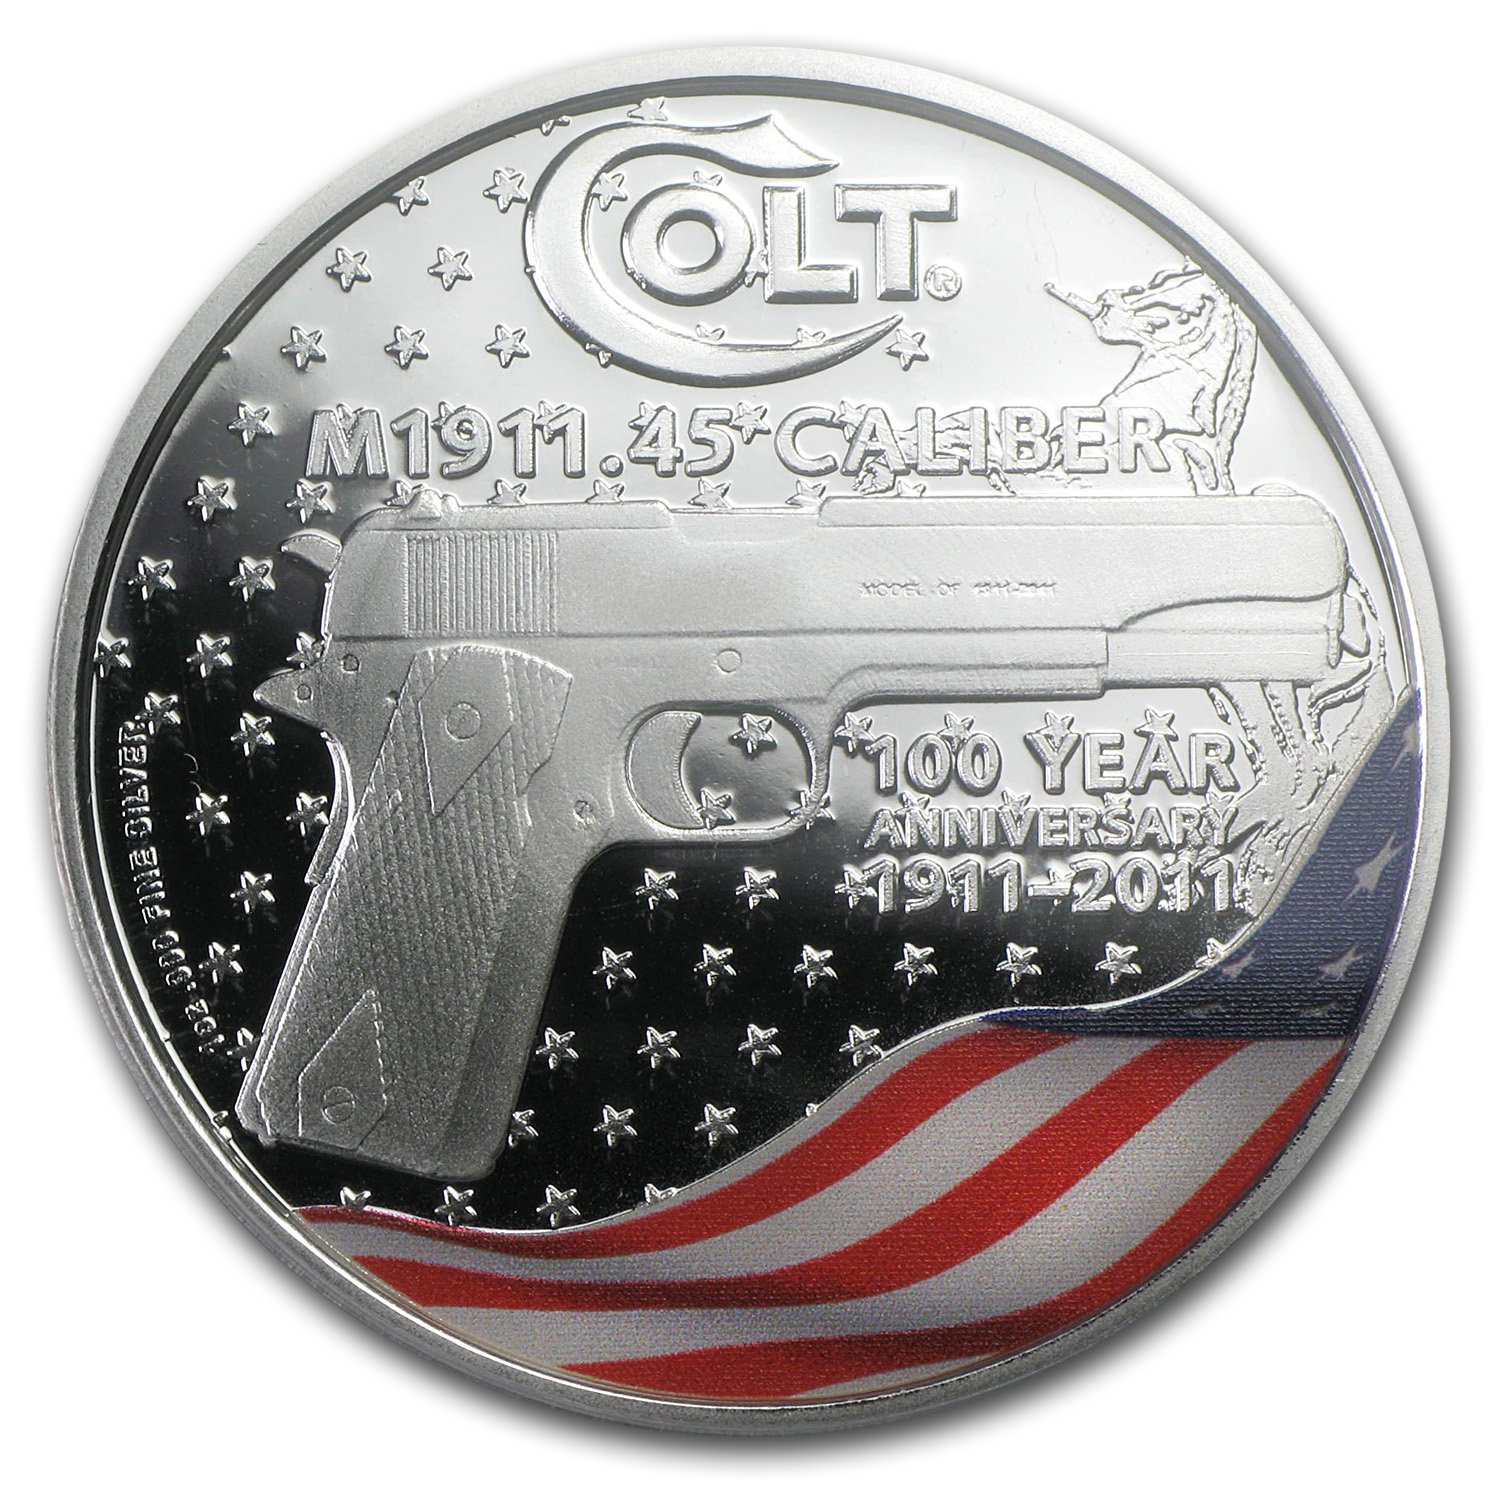 2011 New Zealand Mint 1 oz Silver Colt M1911 Gun PR-70 PCGS